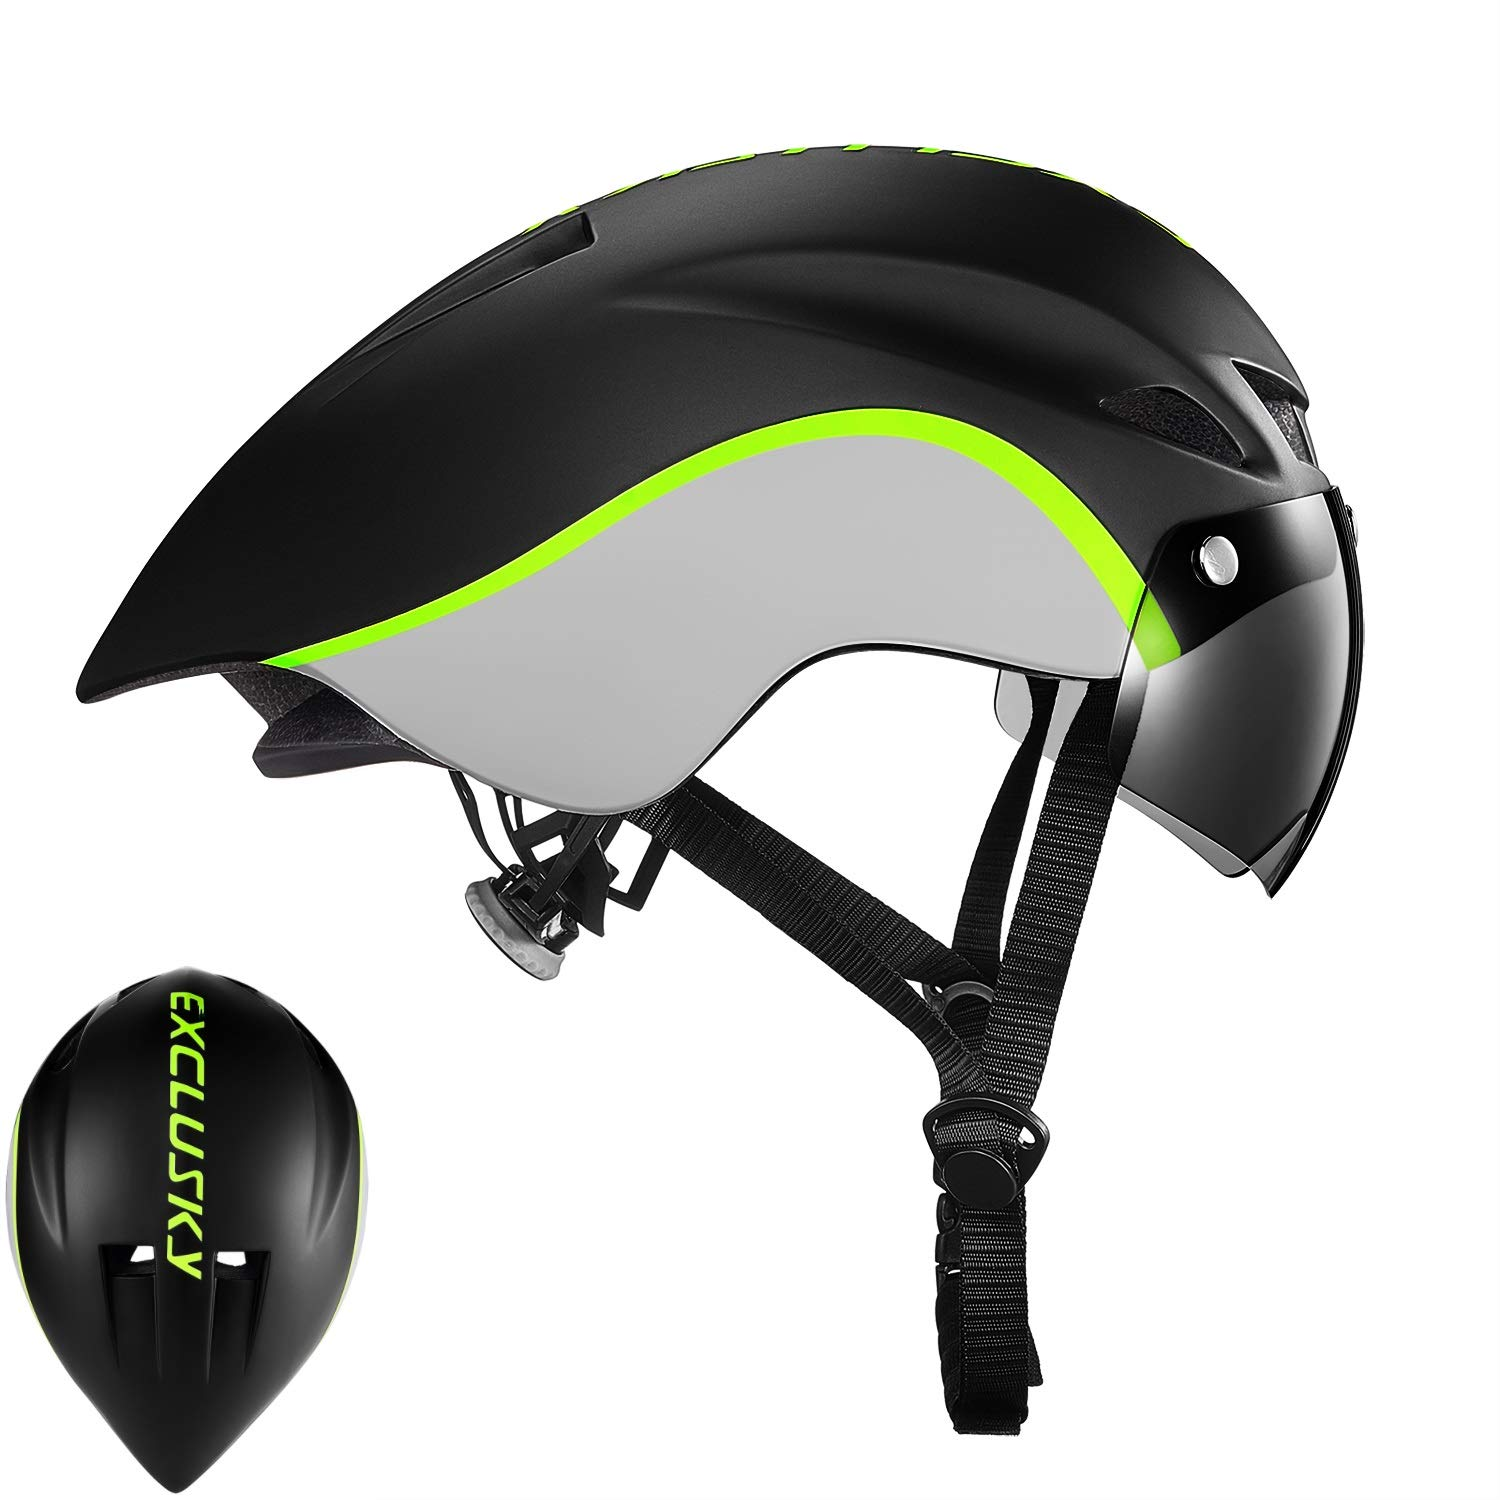 Hook and Loop Attached For Hard Hat Hockey Helmet Absorbs Dripping Sweat Anti Sweat Cooling Helmet Pad Prevents Stains /& Odor Cooling Bicycle Helmet Motorcycle Helmet Liner Reusable /& Washable